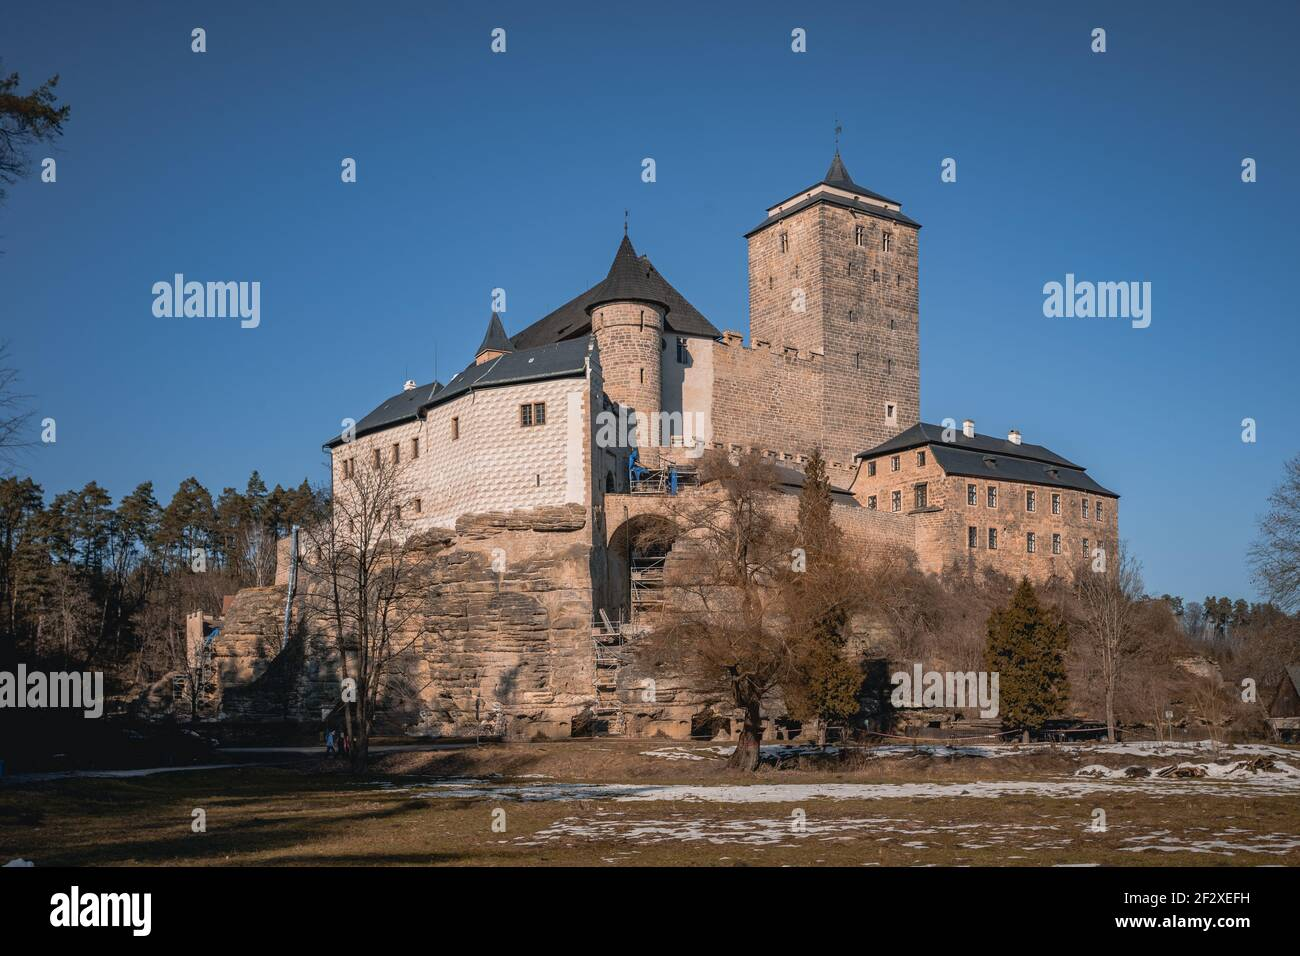 Gothic castle Kost in National Park Cesky Raj - Czech Paradise. Amazing view to medieval monument in Czech Republic. Central Europe. Public state Stock Photo